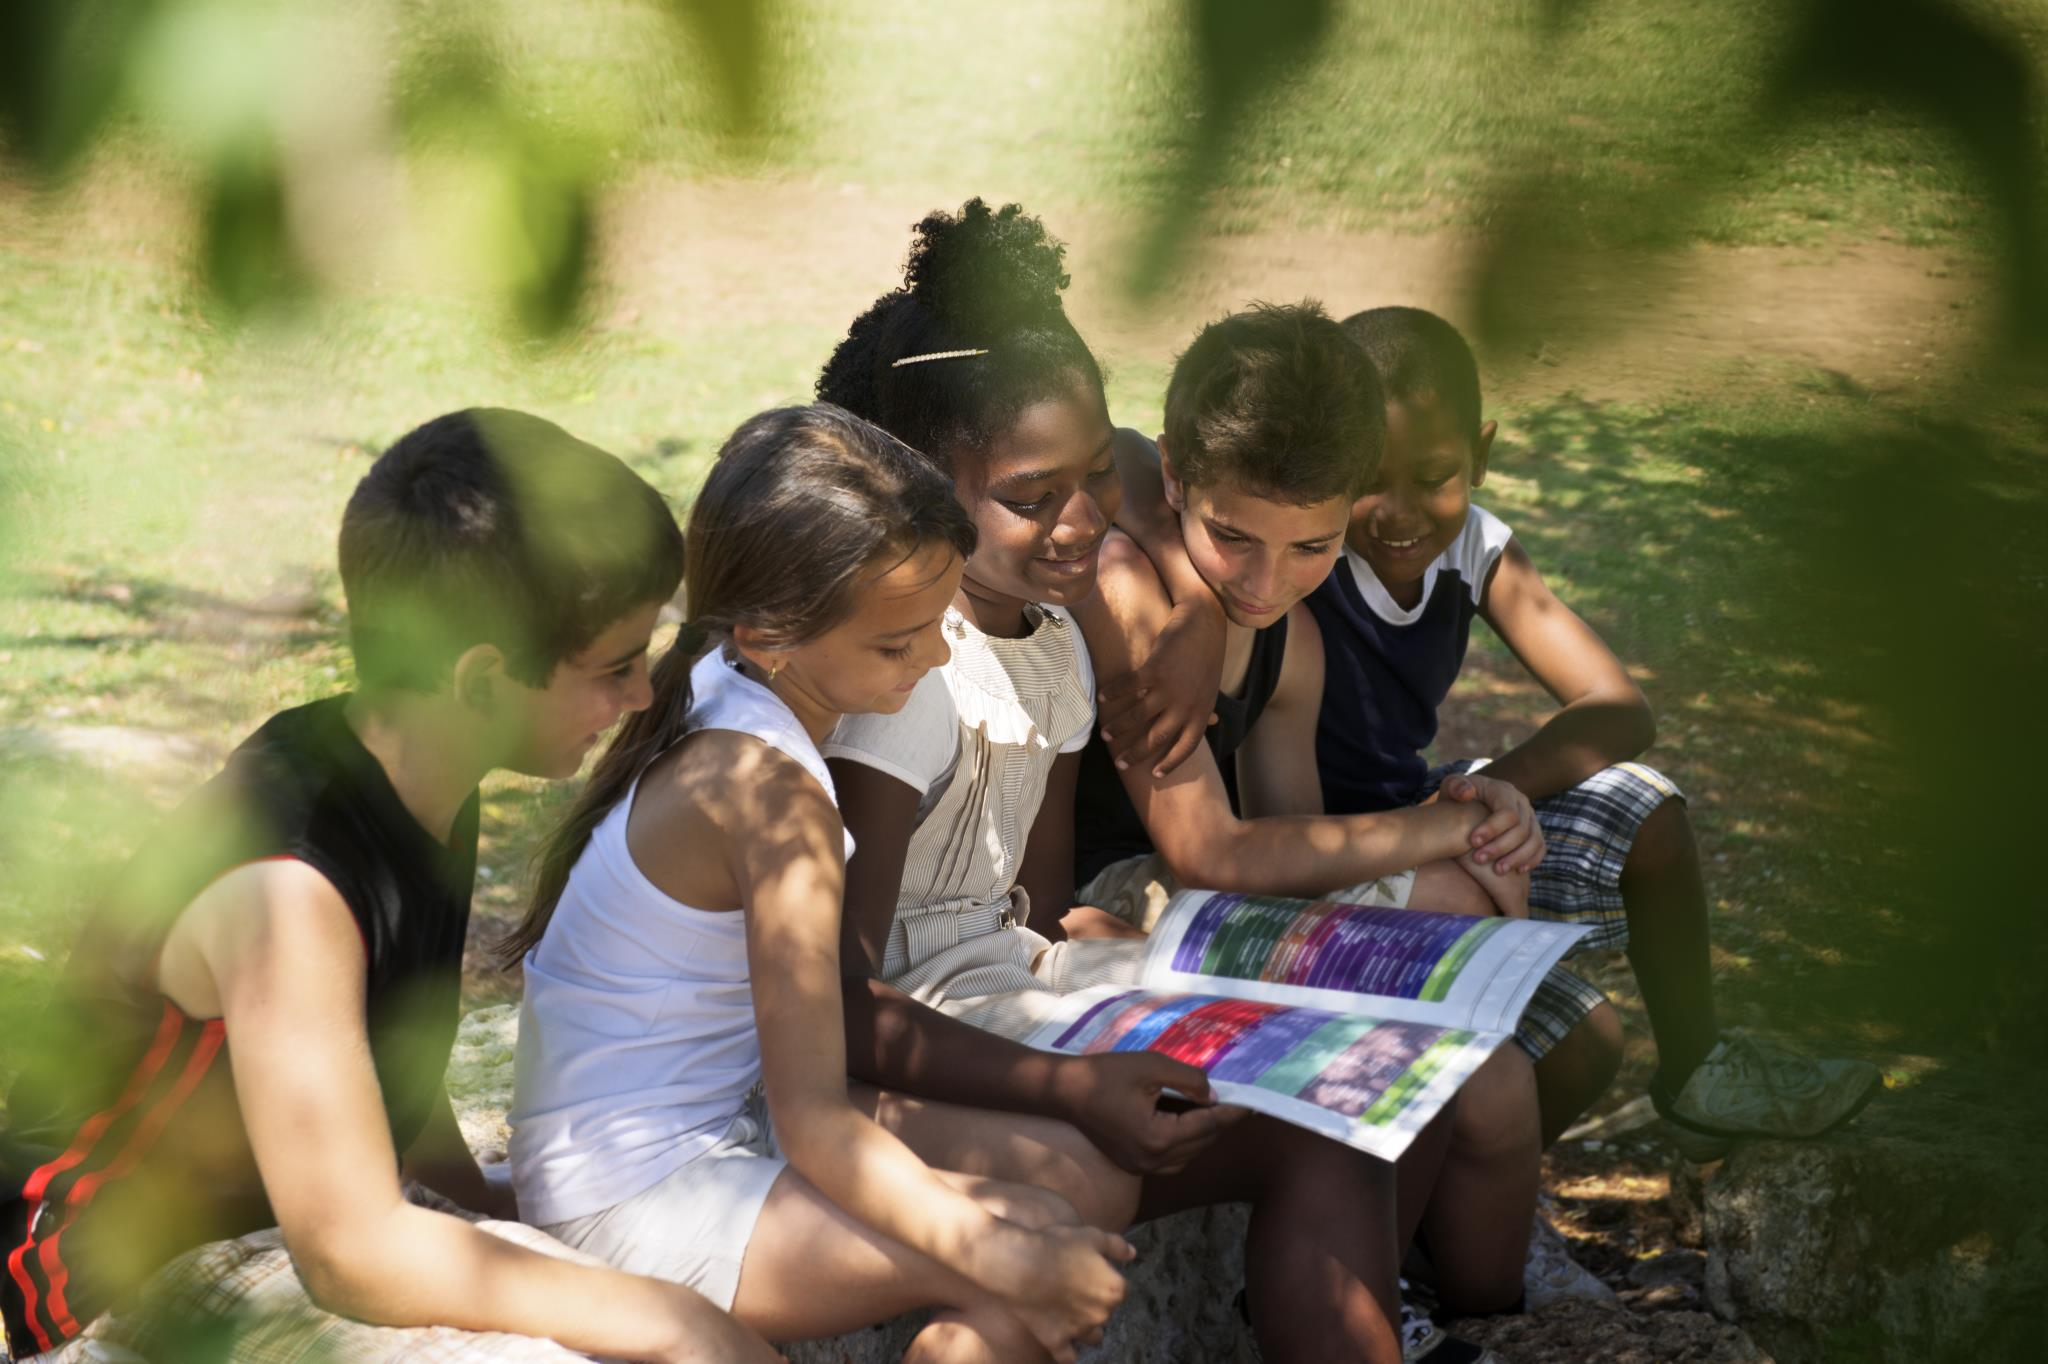 Children reading a book together in the shade